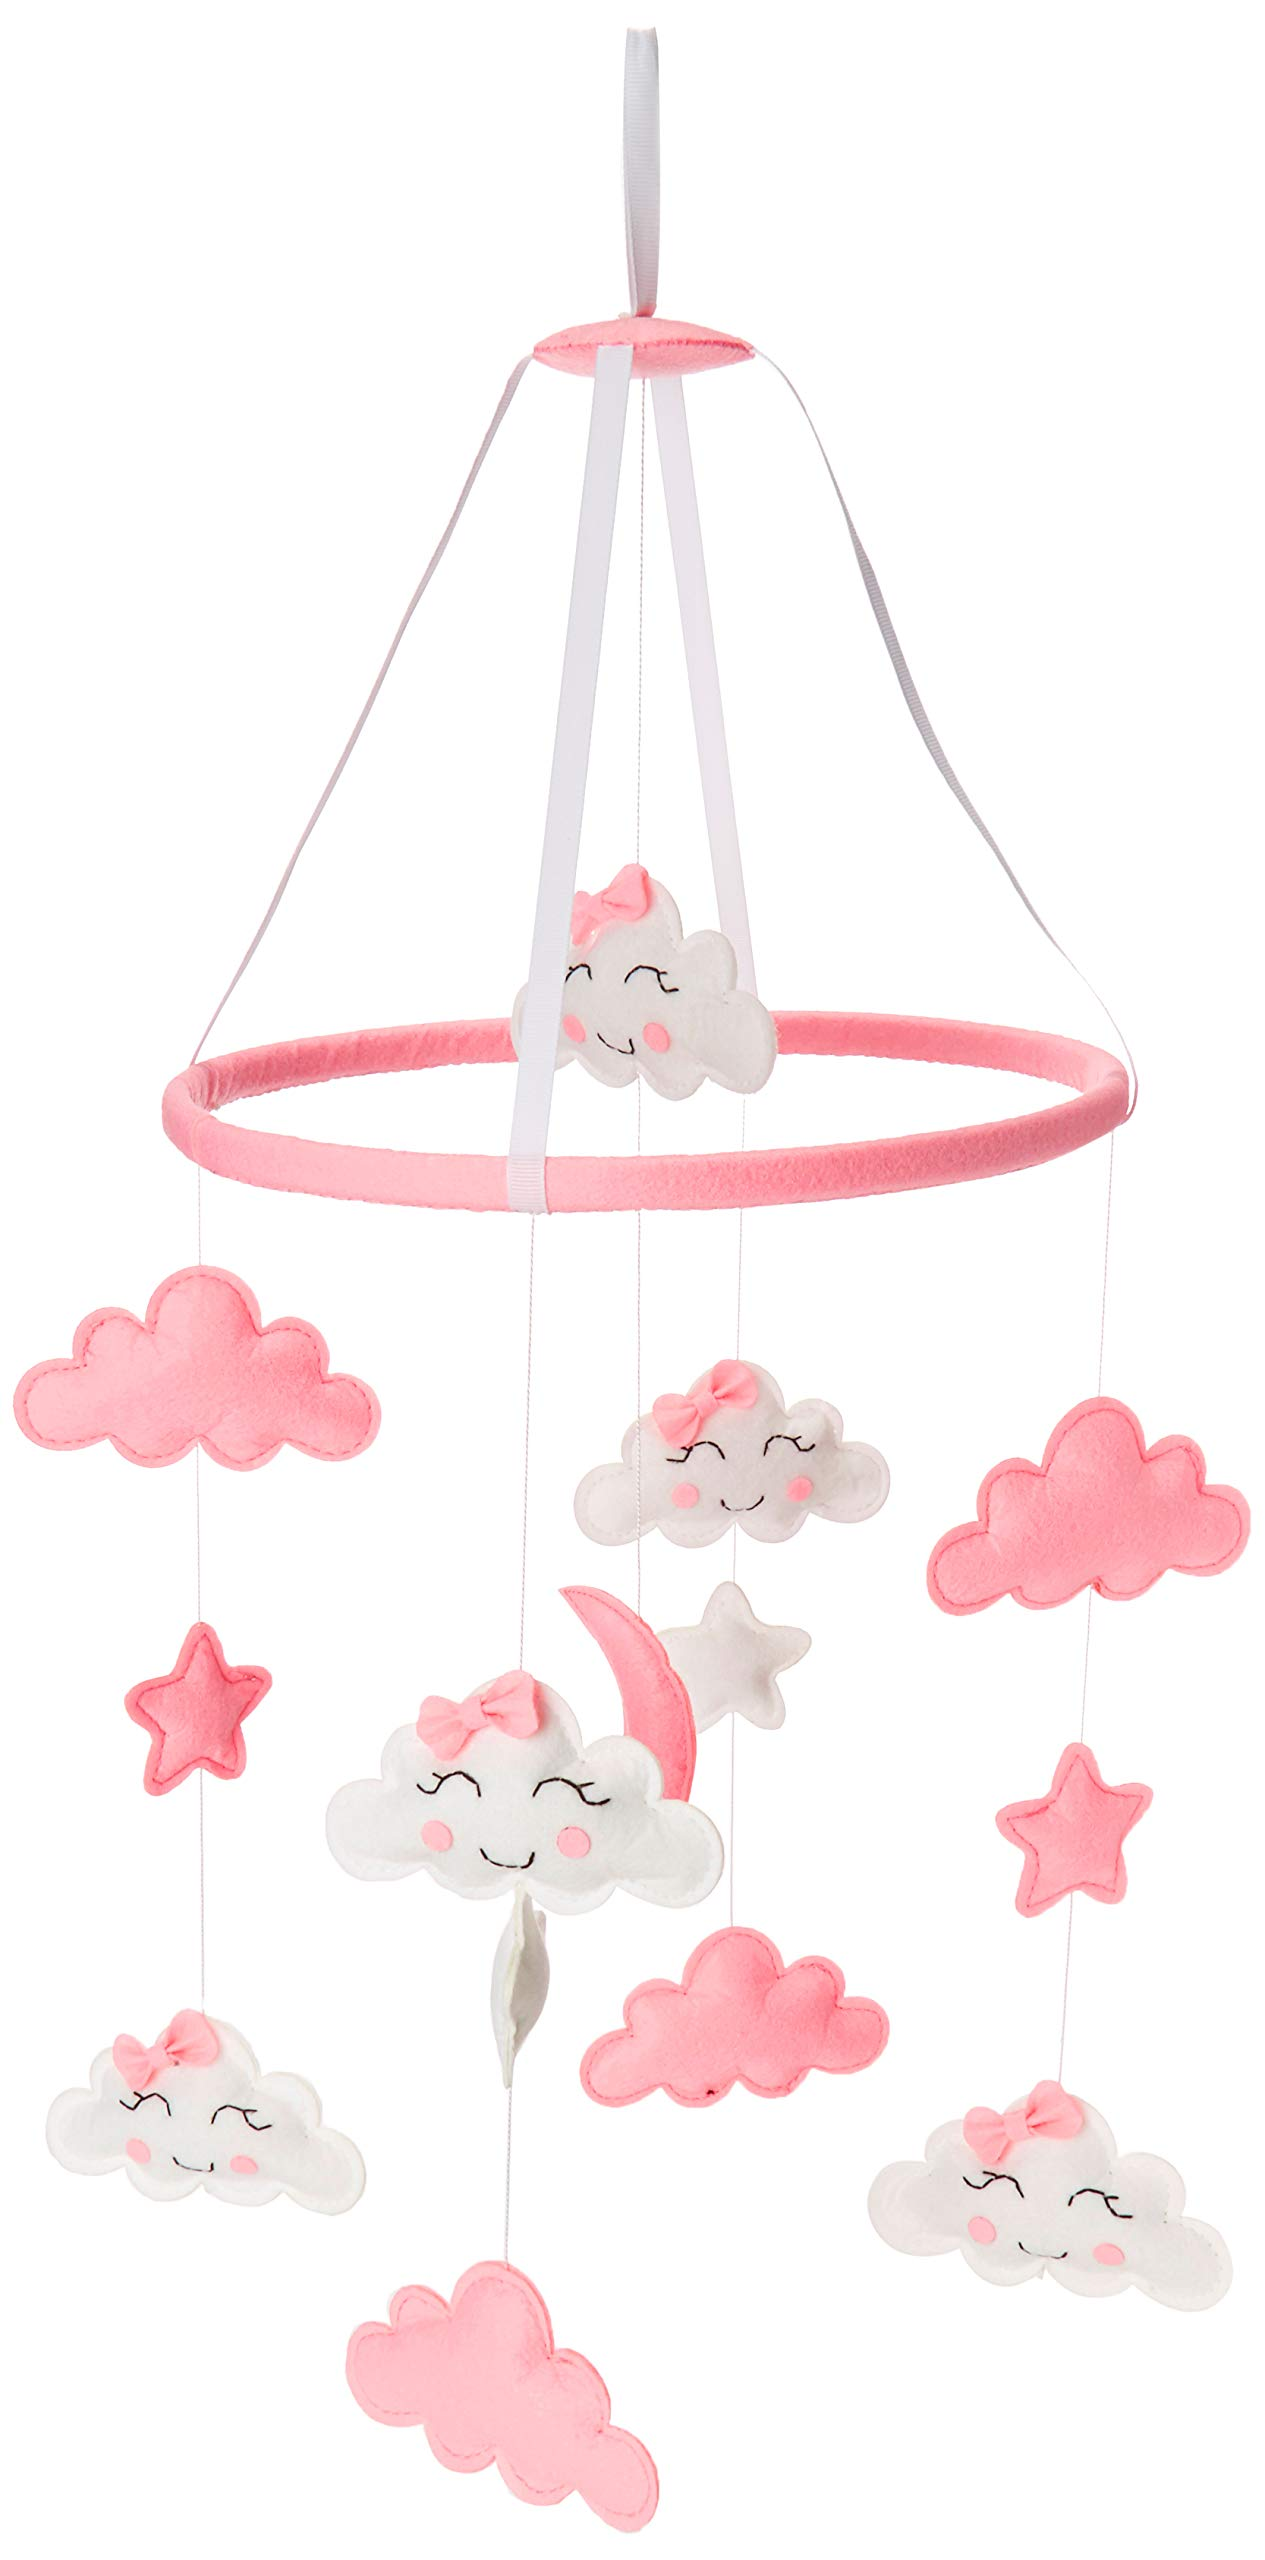 Baby Mobile for Crib Felt, Hanging Toys, Nursery Decor for Girls | White & Pink Room Decorations, Clouds, Moons & Stars | Safe, Non-Toxic, Gifts for Newborn, Great for Baby Shower